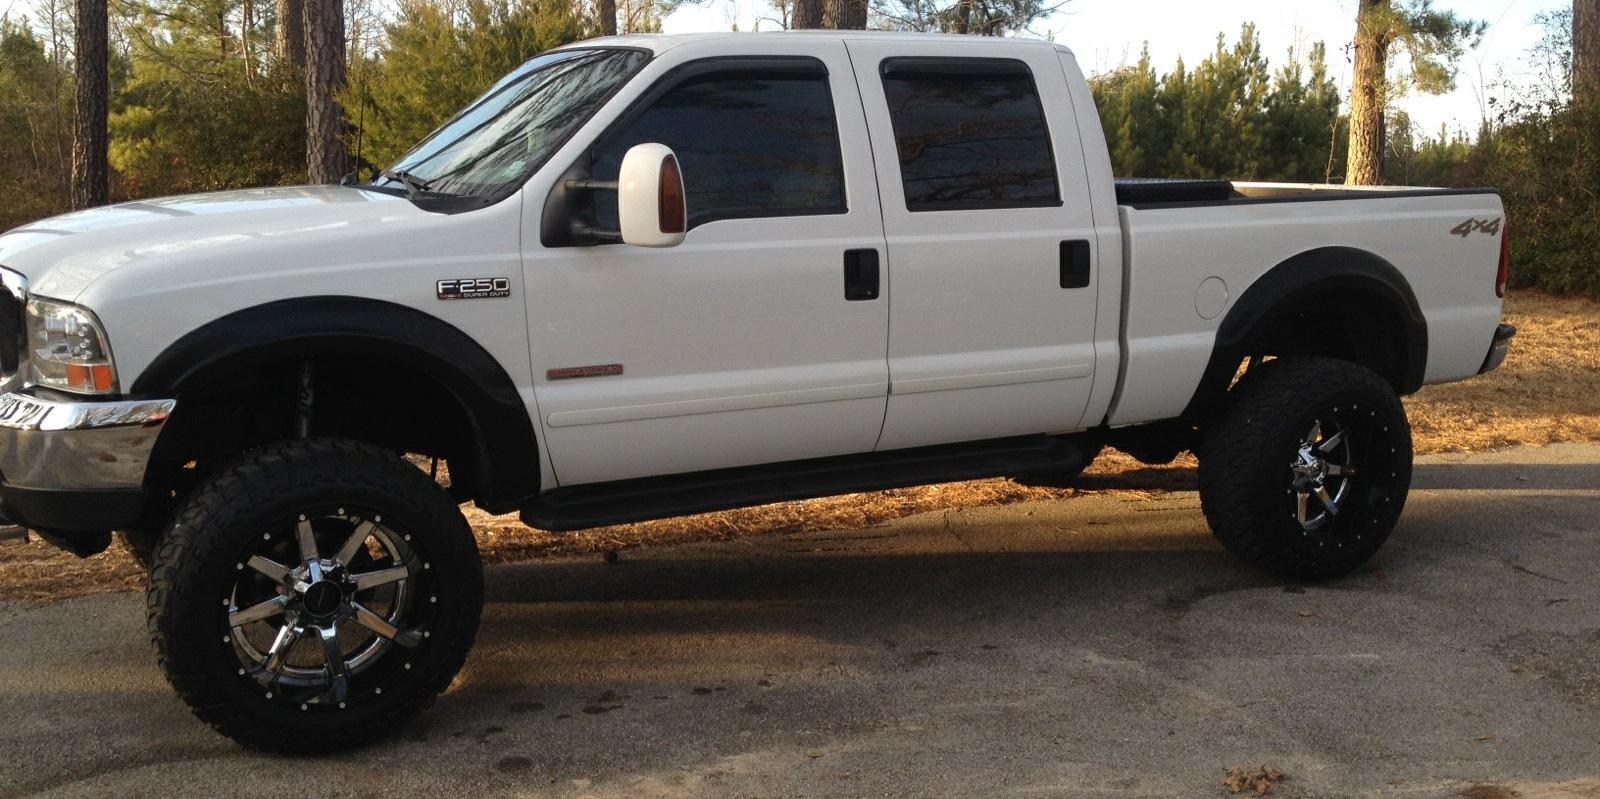 IMASB 2003 Ford F250 Super Duty Crew Cab